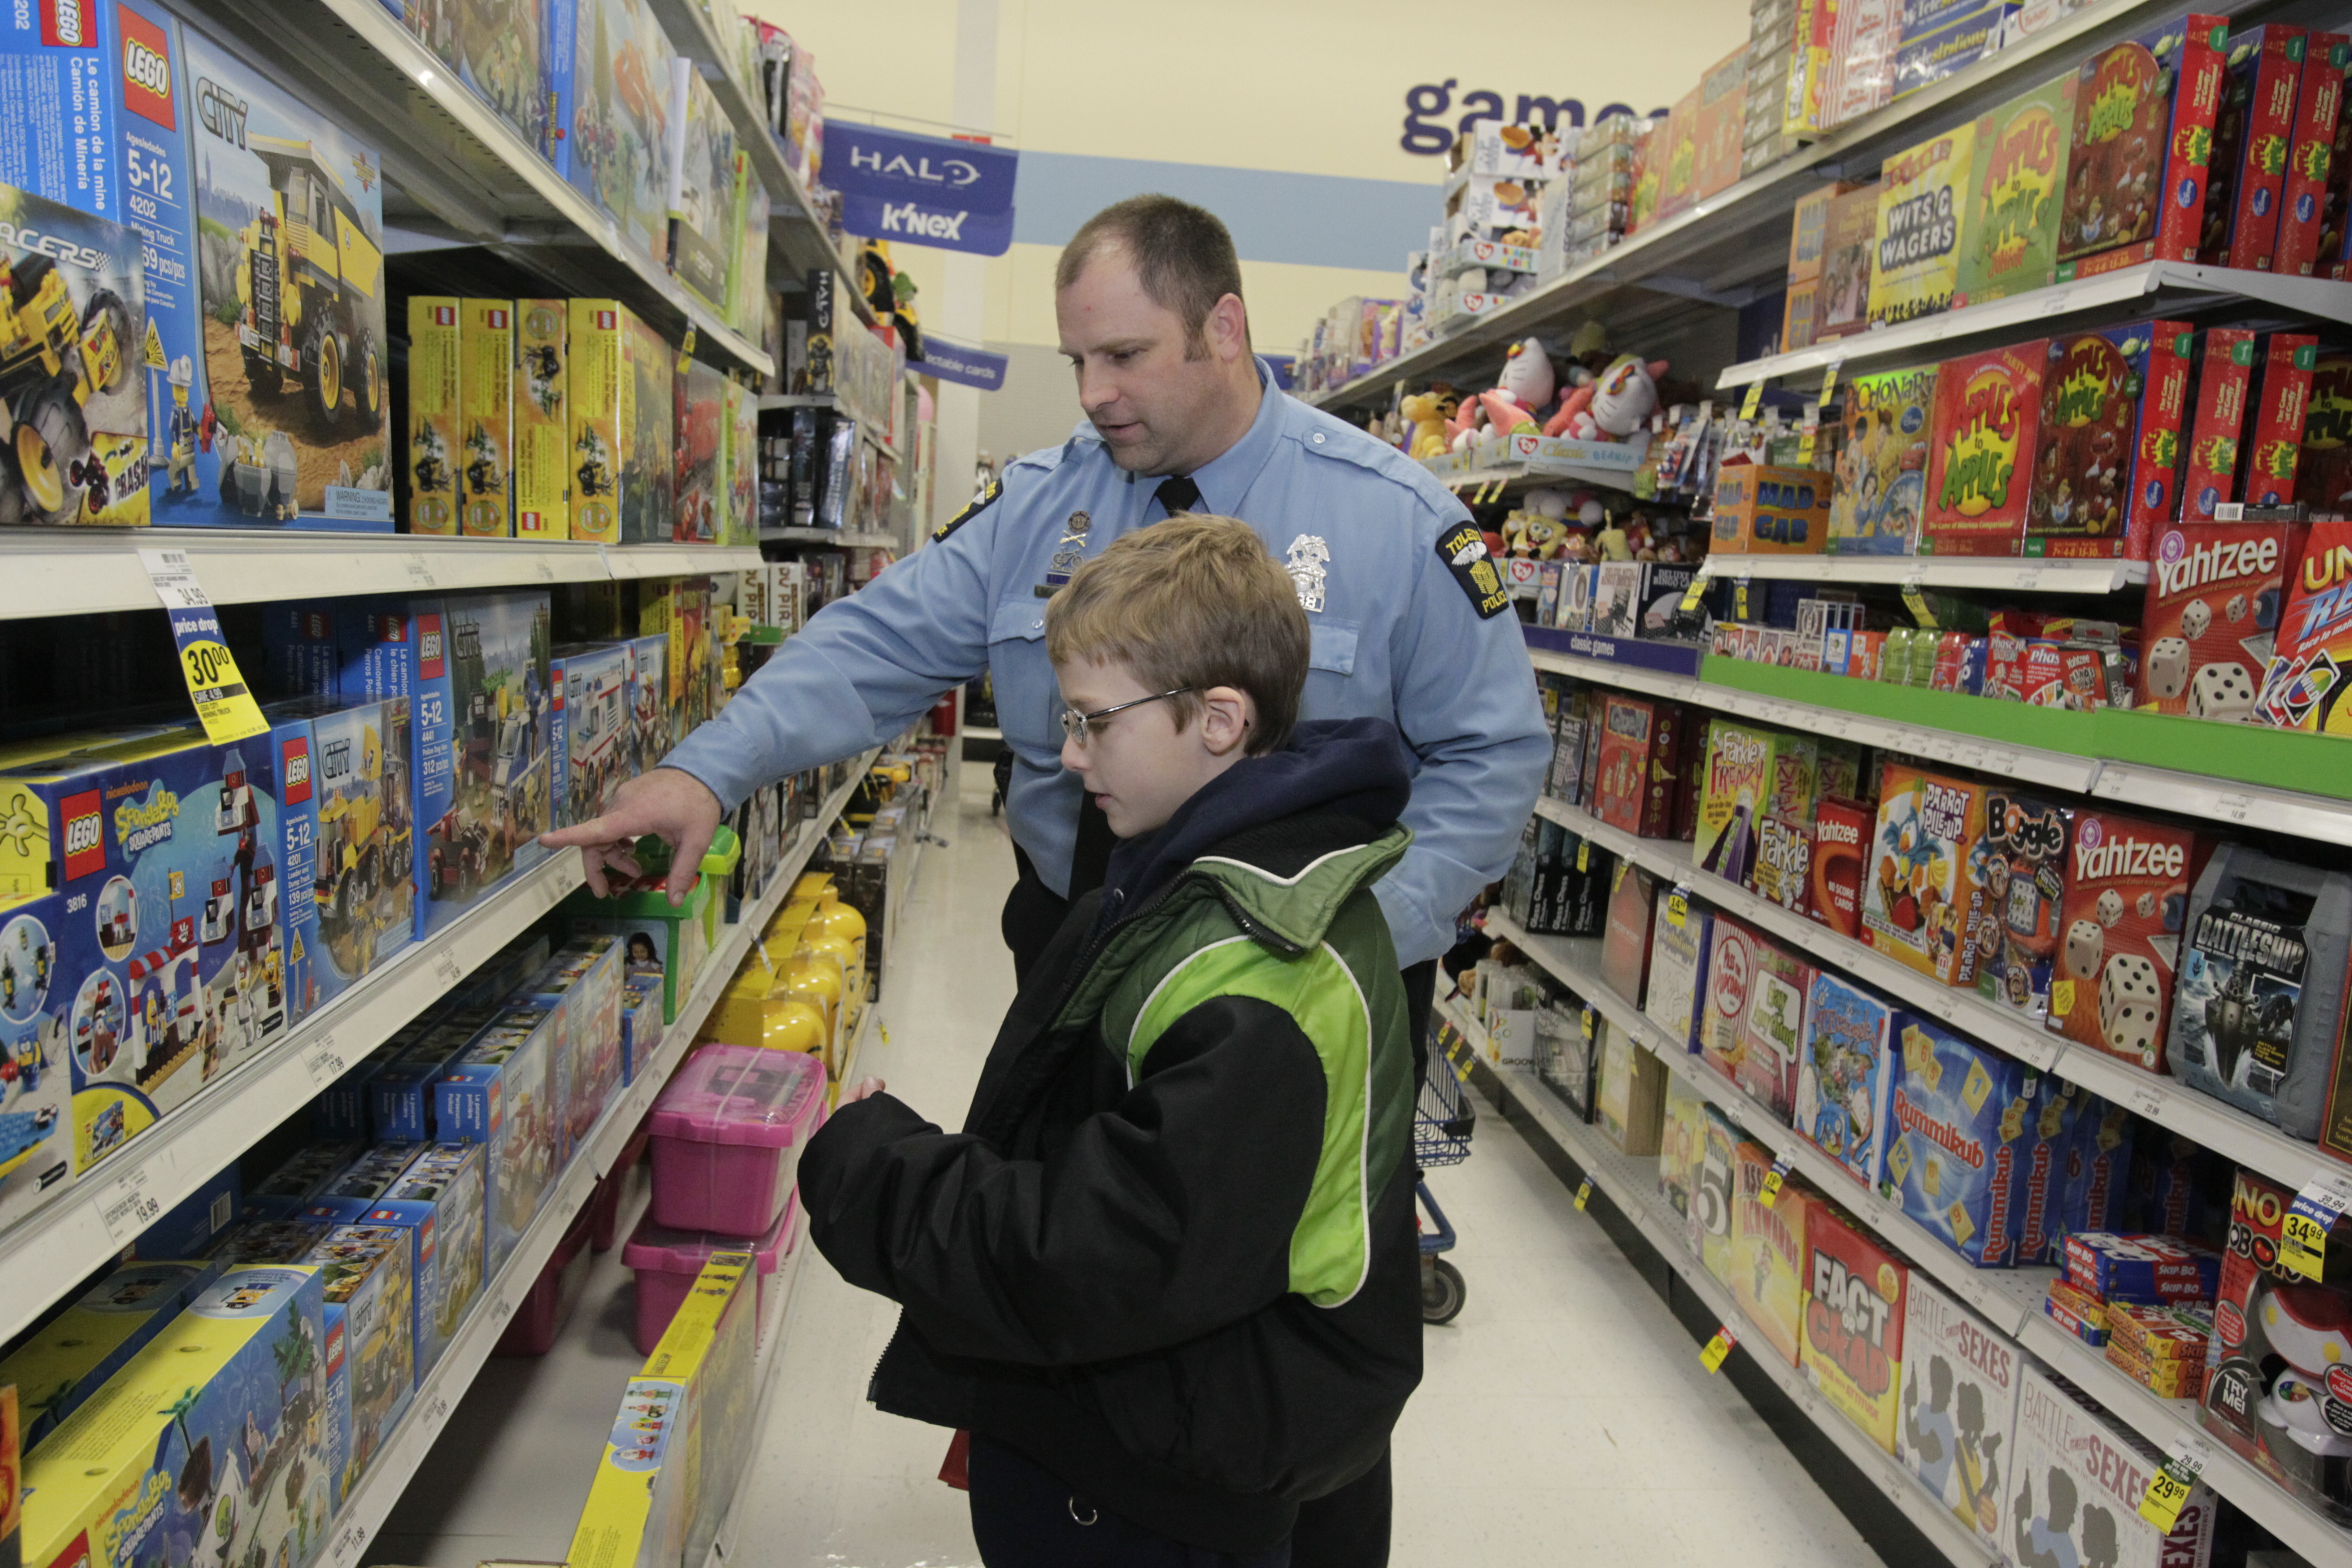 helping children humbles officers